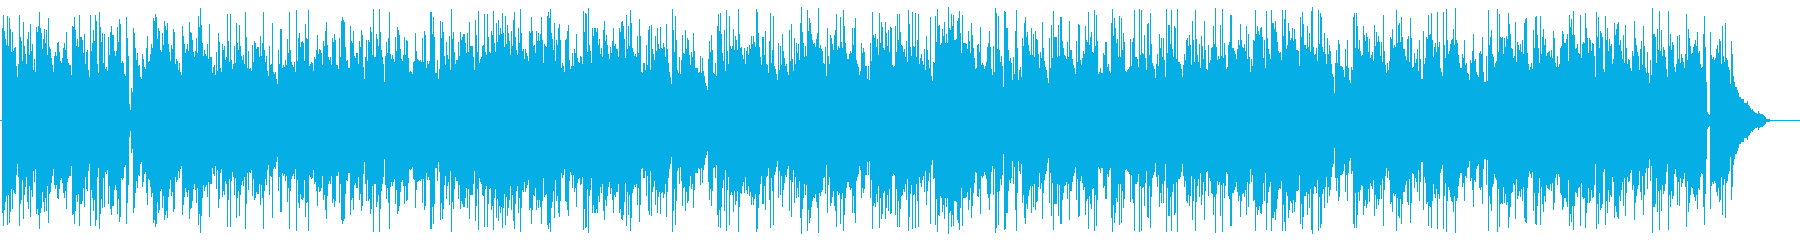 Dreamer Bossa Nova arrangement's reproduced waveform